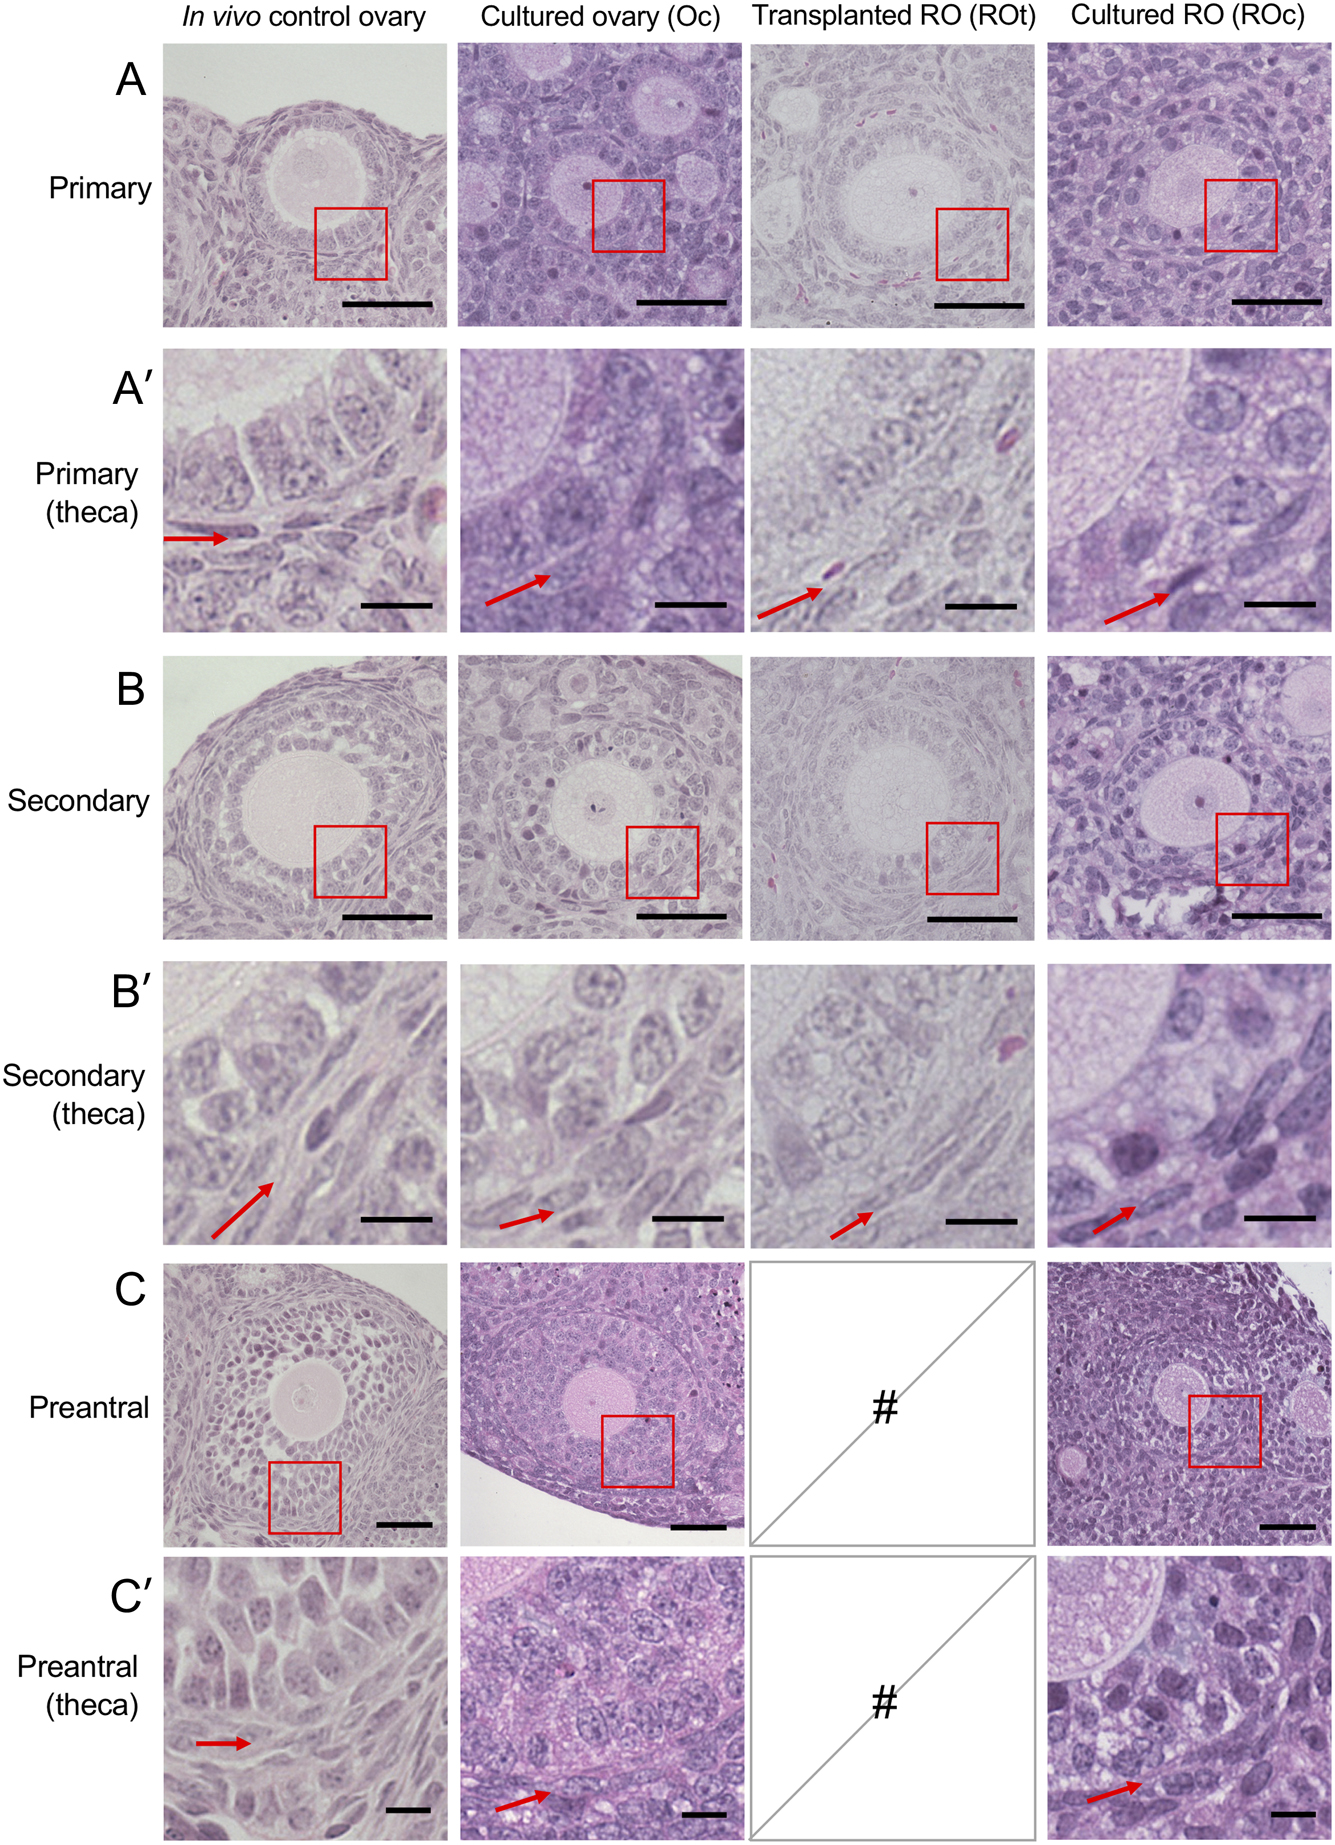 In vitro and in vivo mouse follicle development in ovaries and